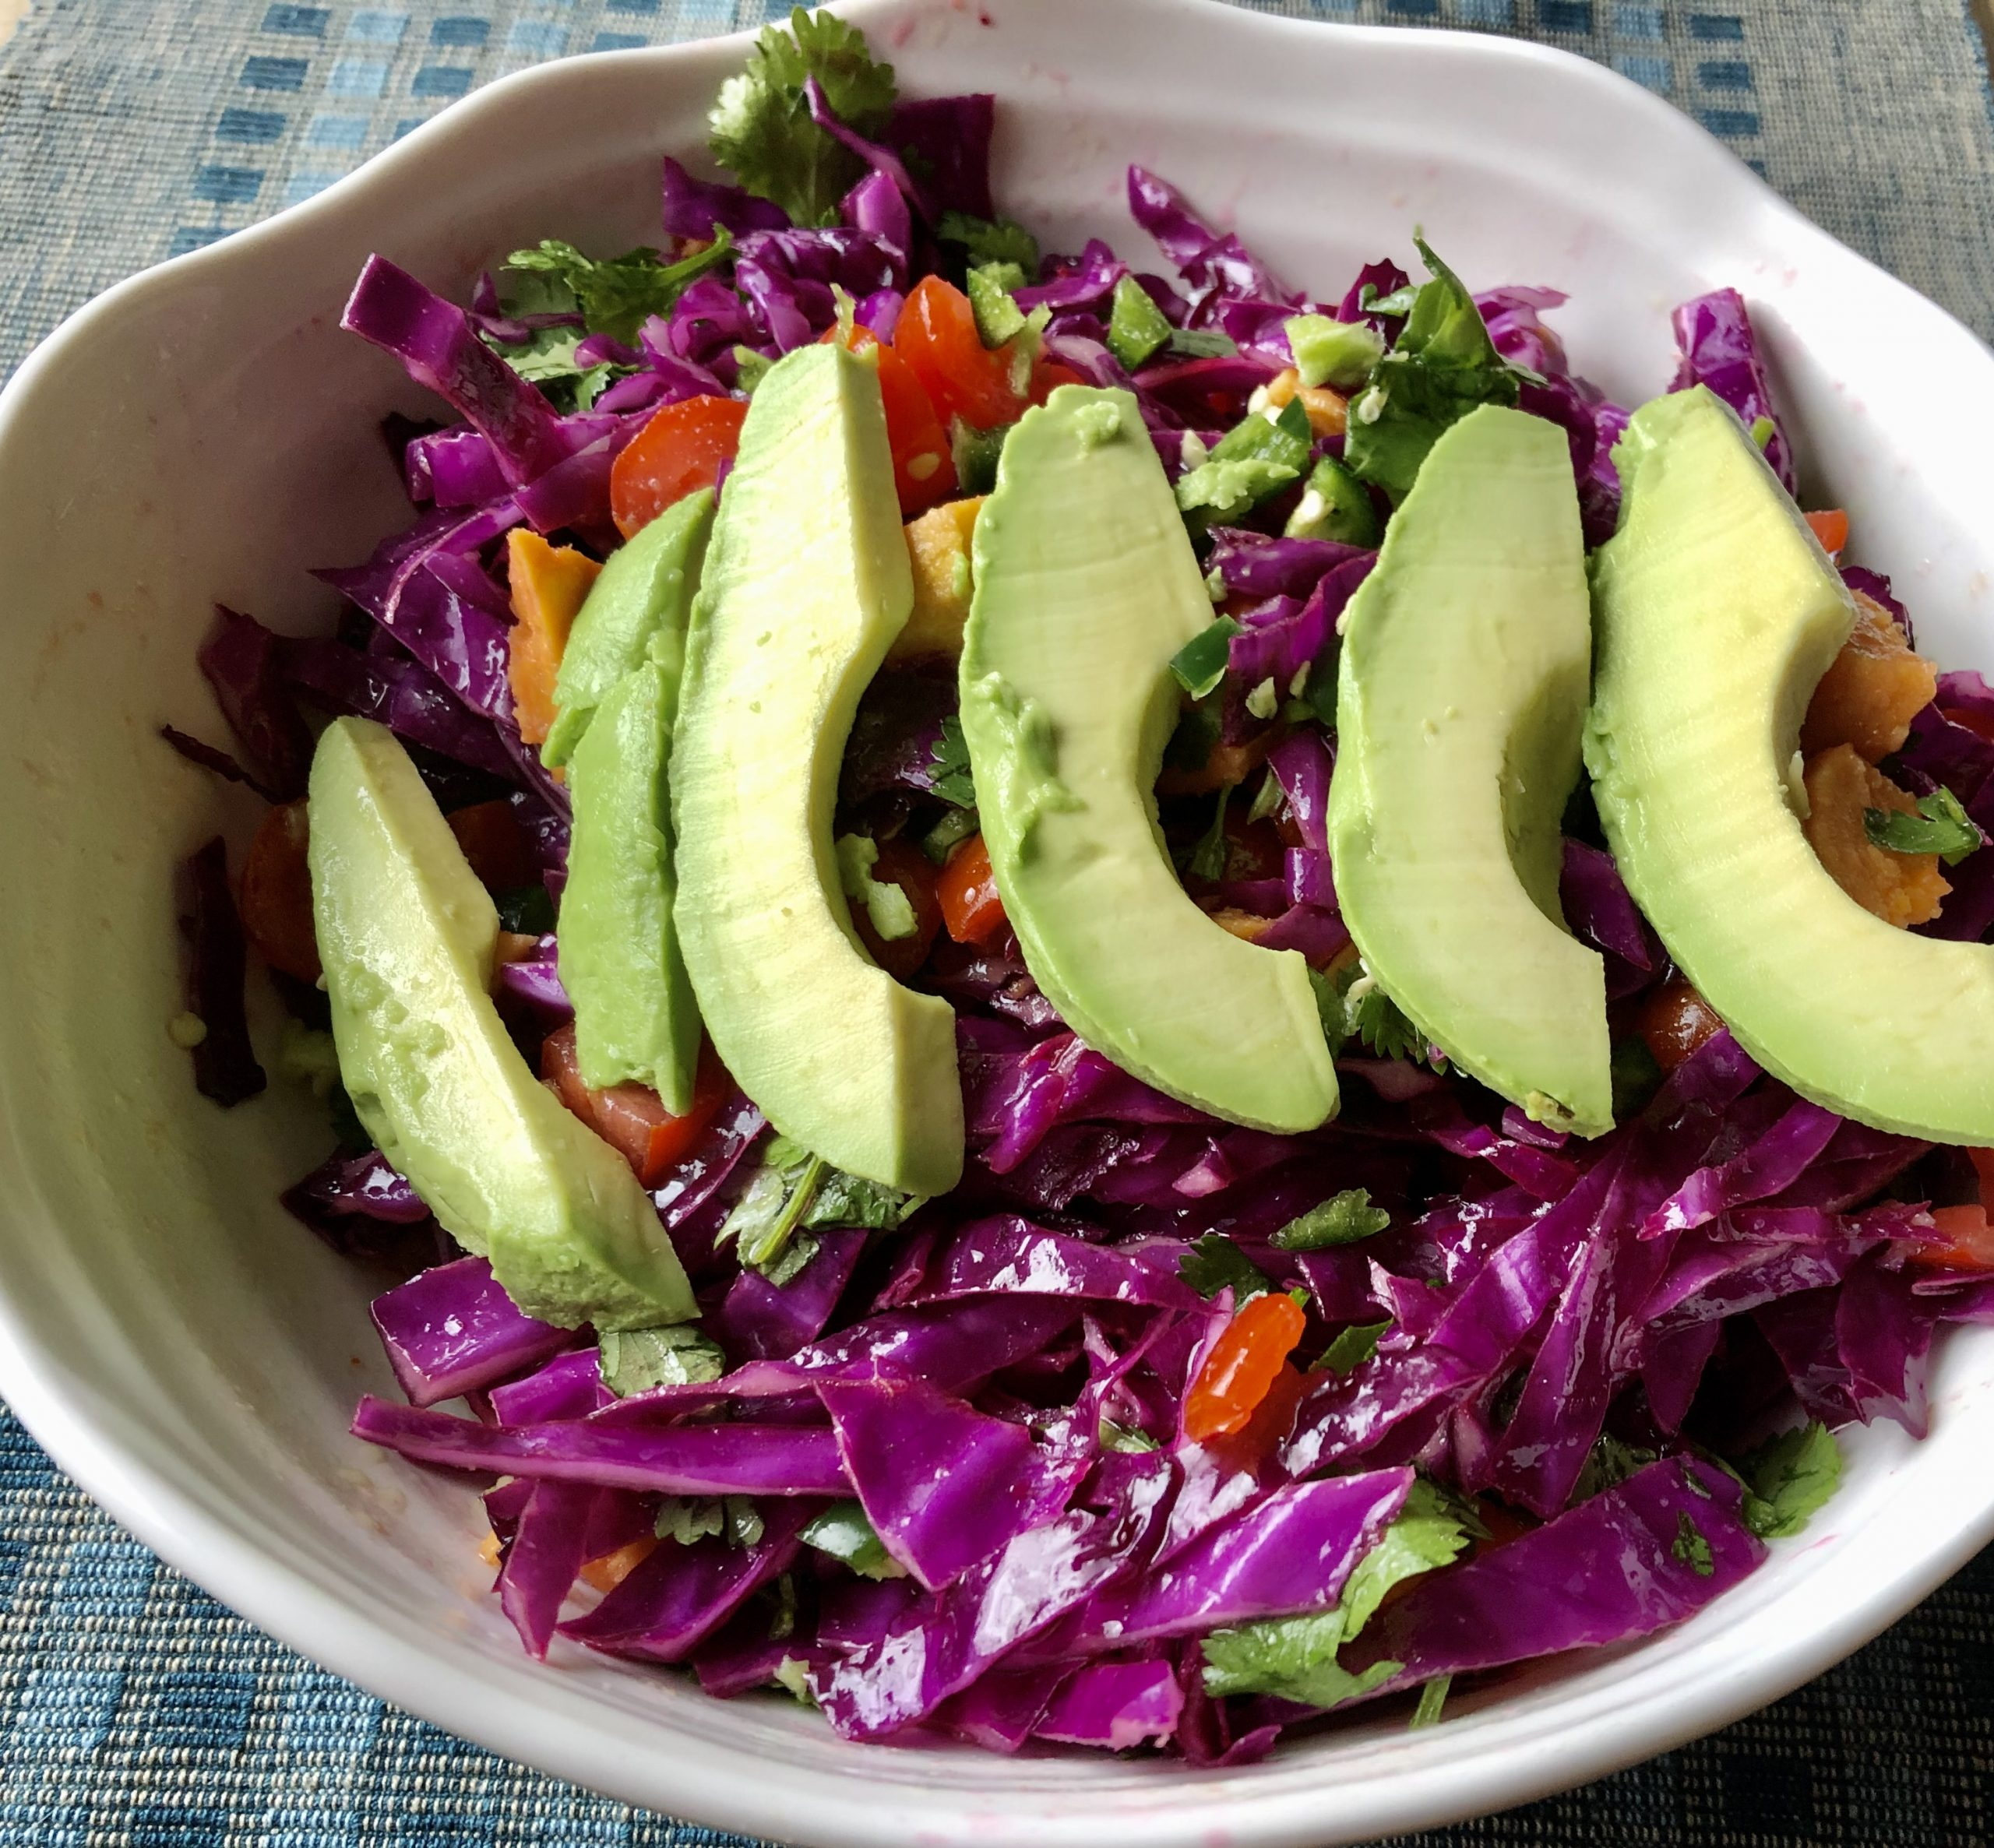 Purple Salad with Polyphenols